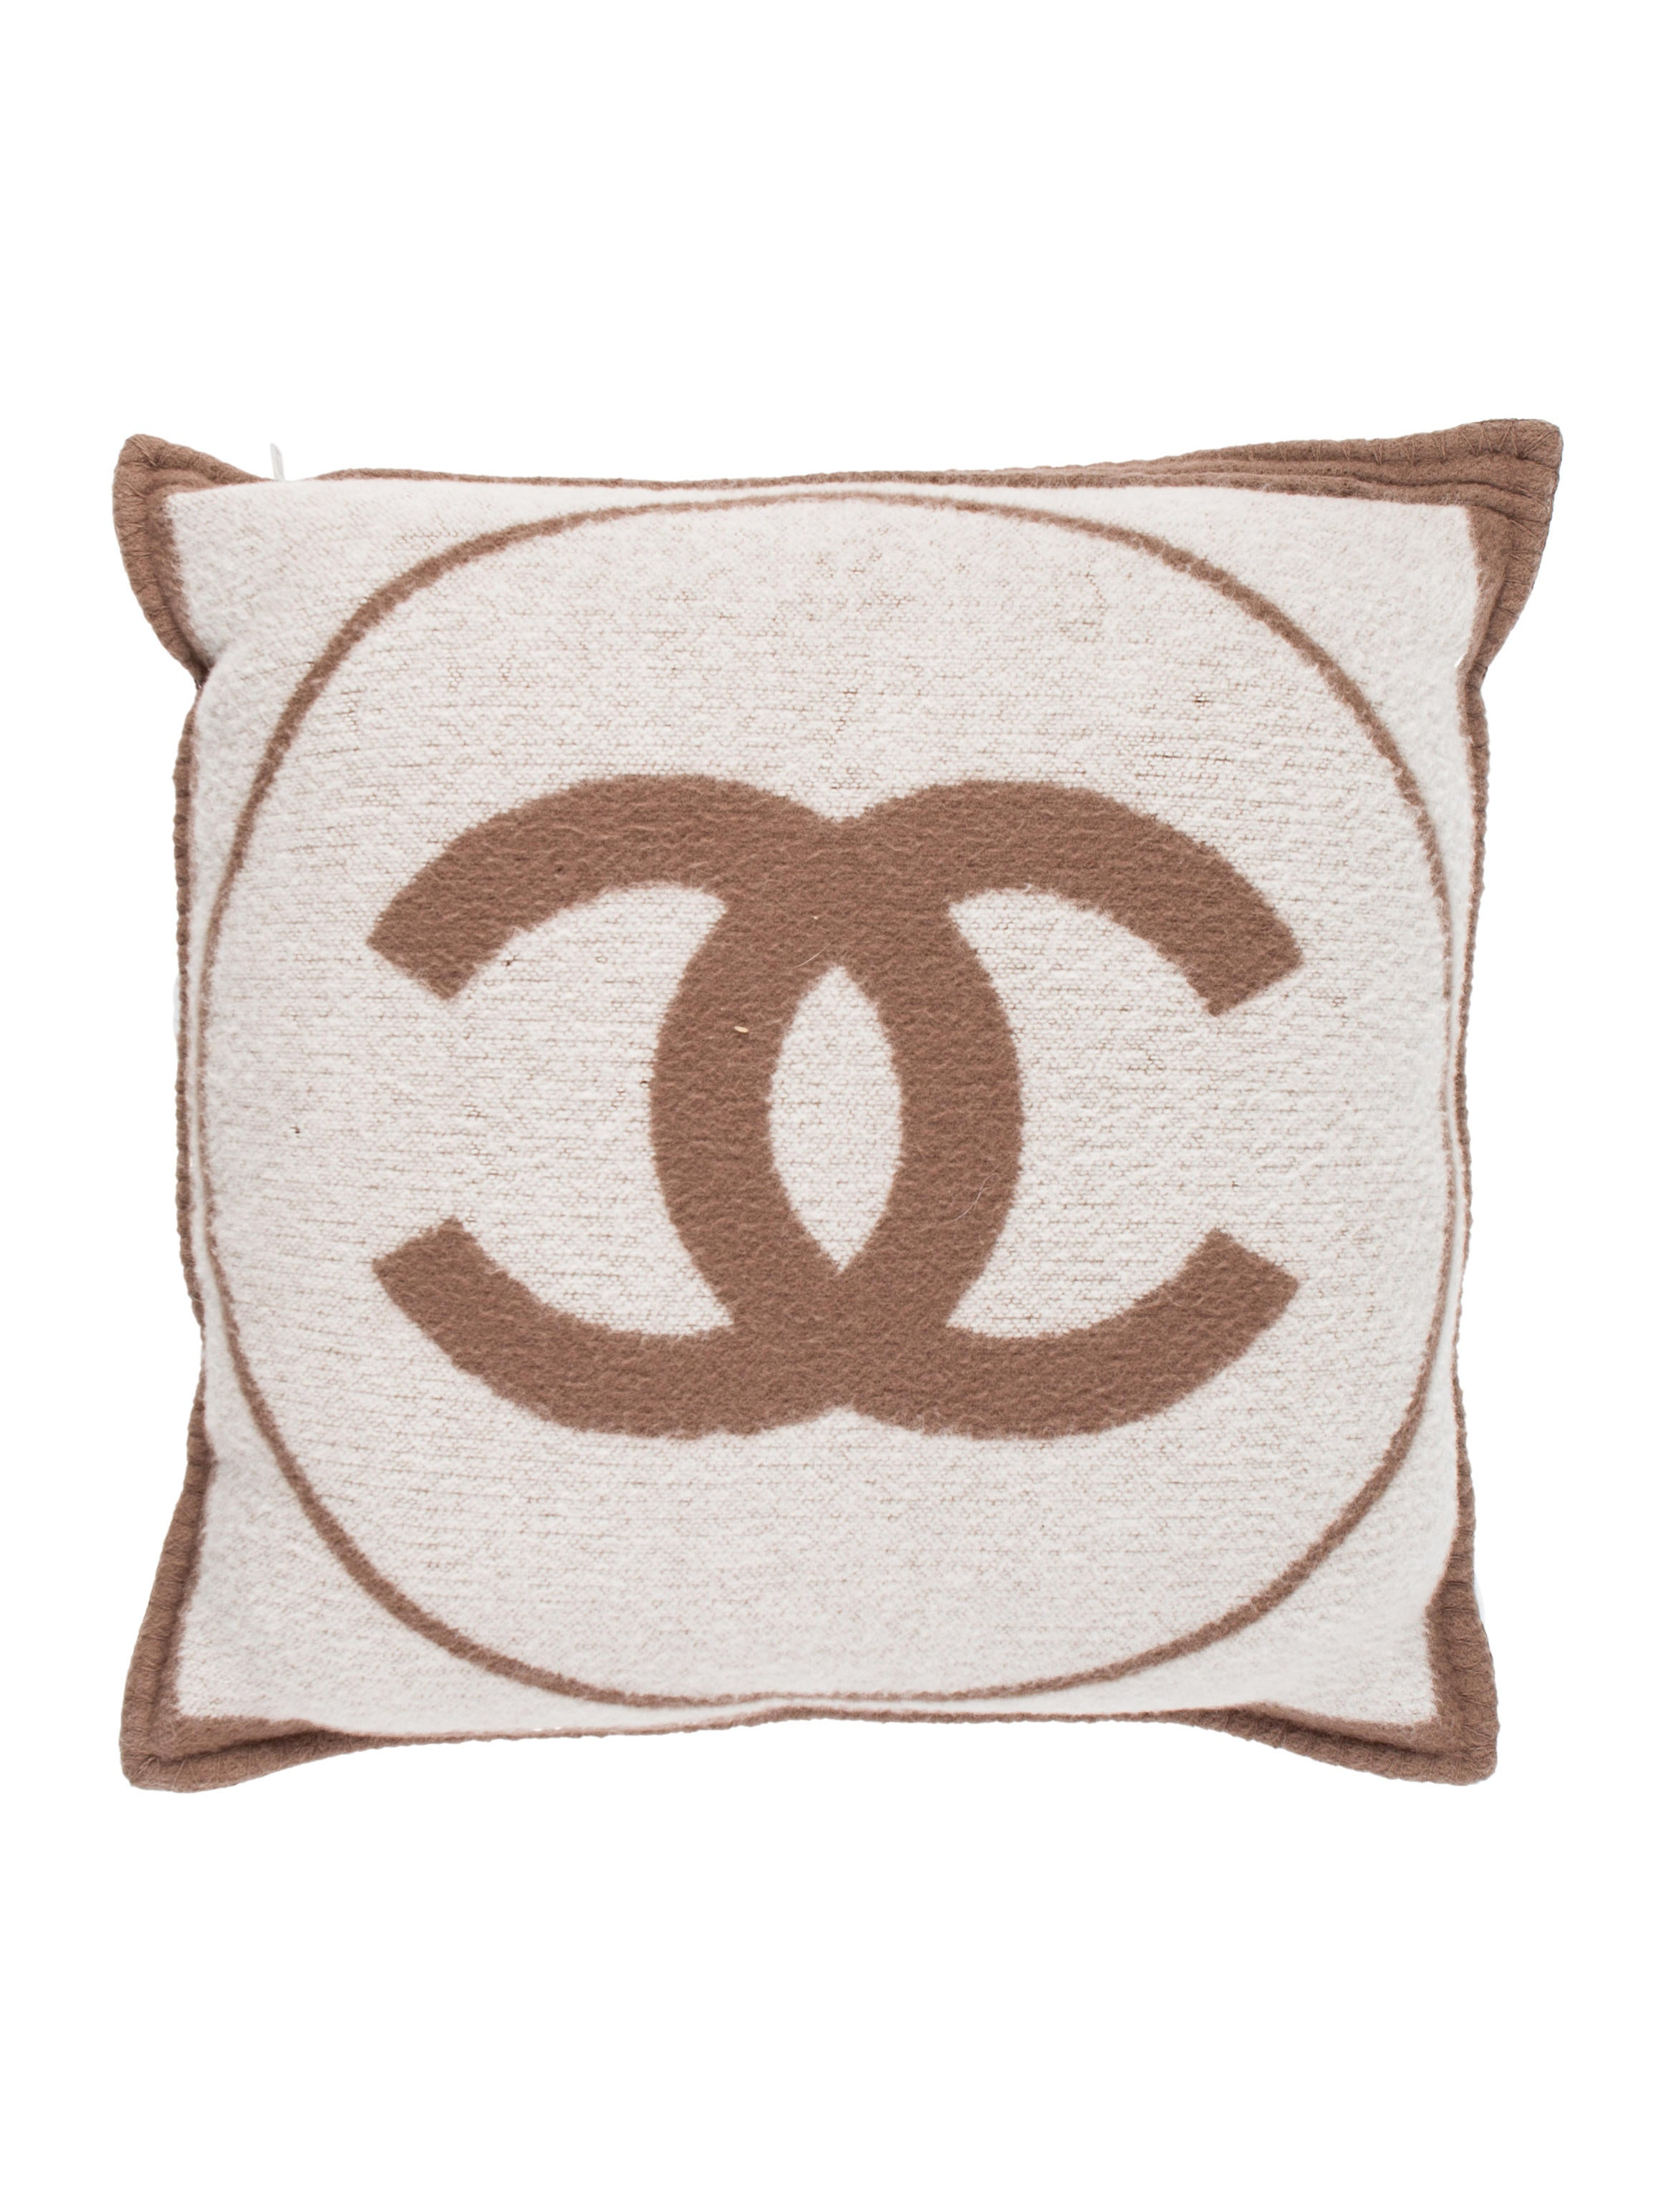 Chanel Wool & Cashmere Throw Pillow - Pillows And Throws - CHA229261 The RealReal